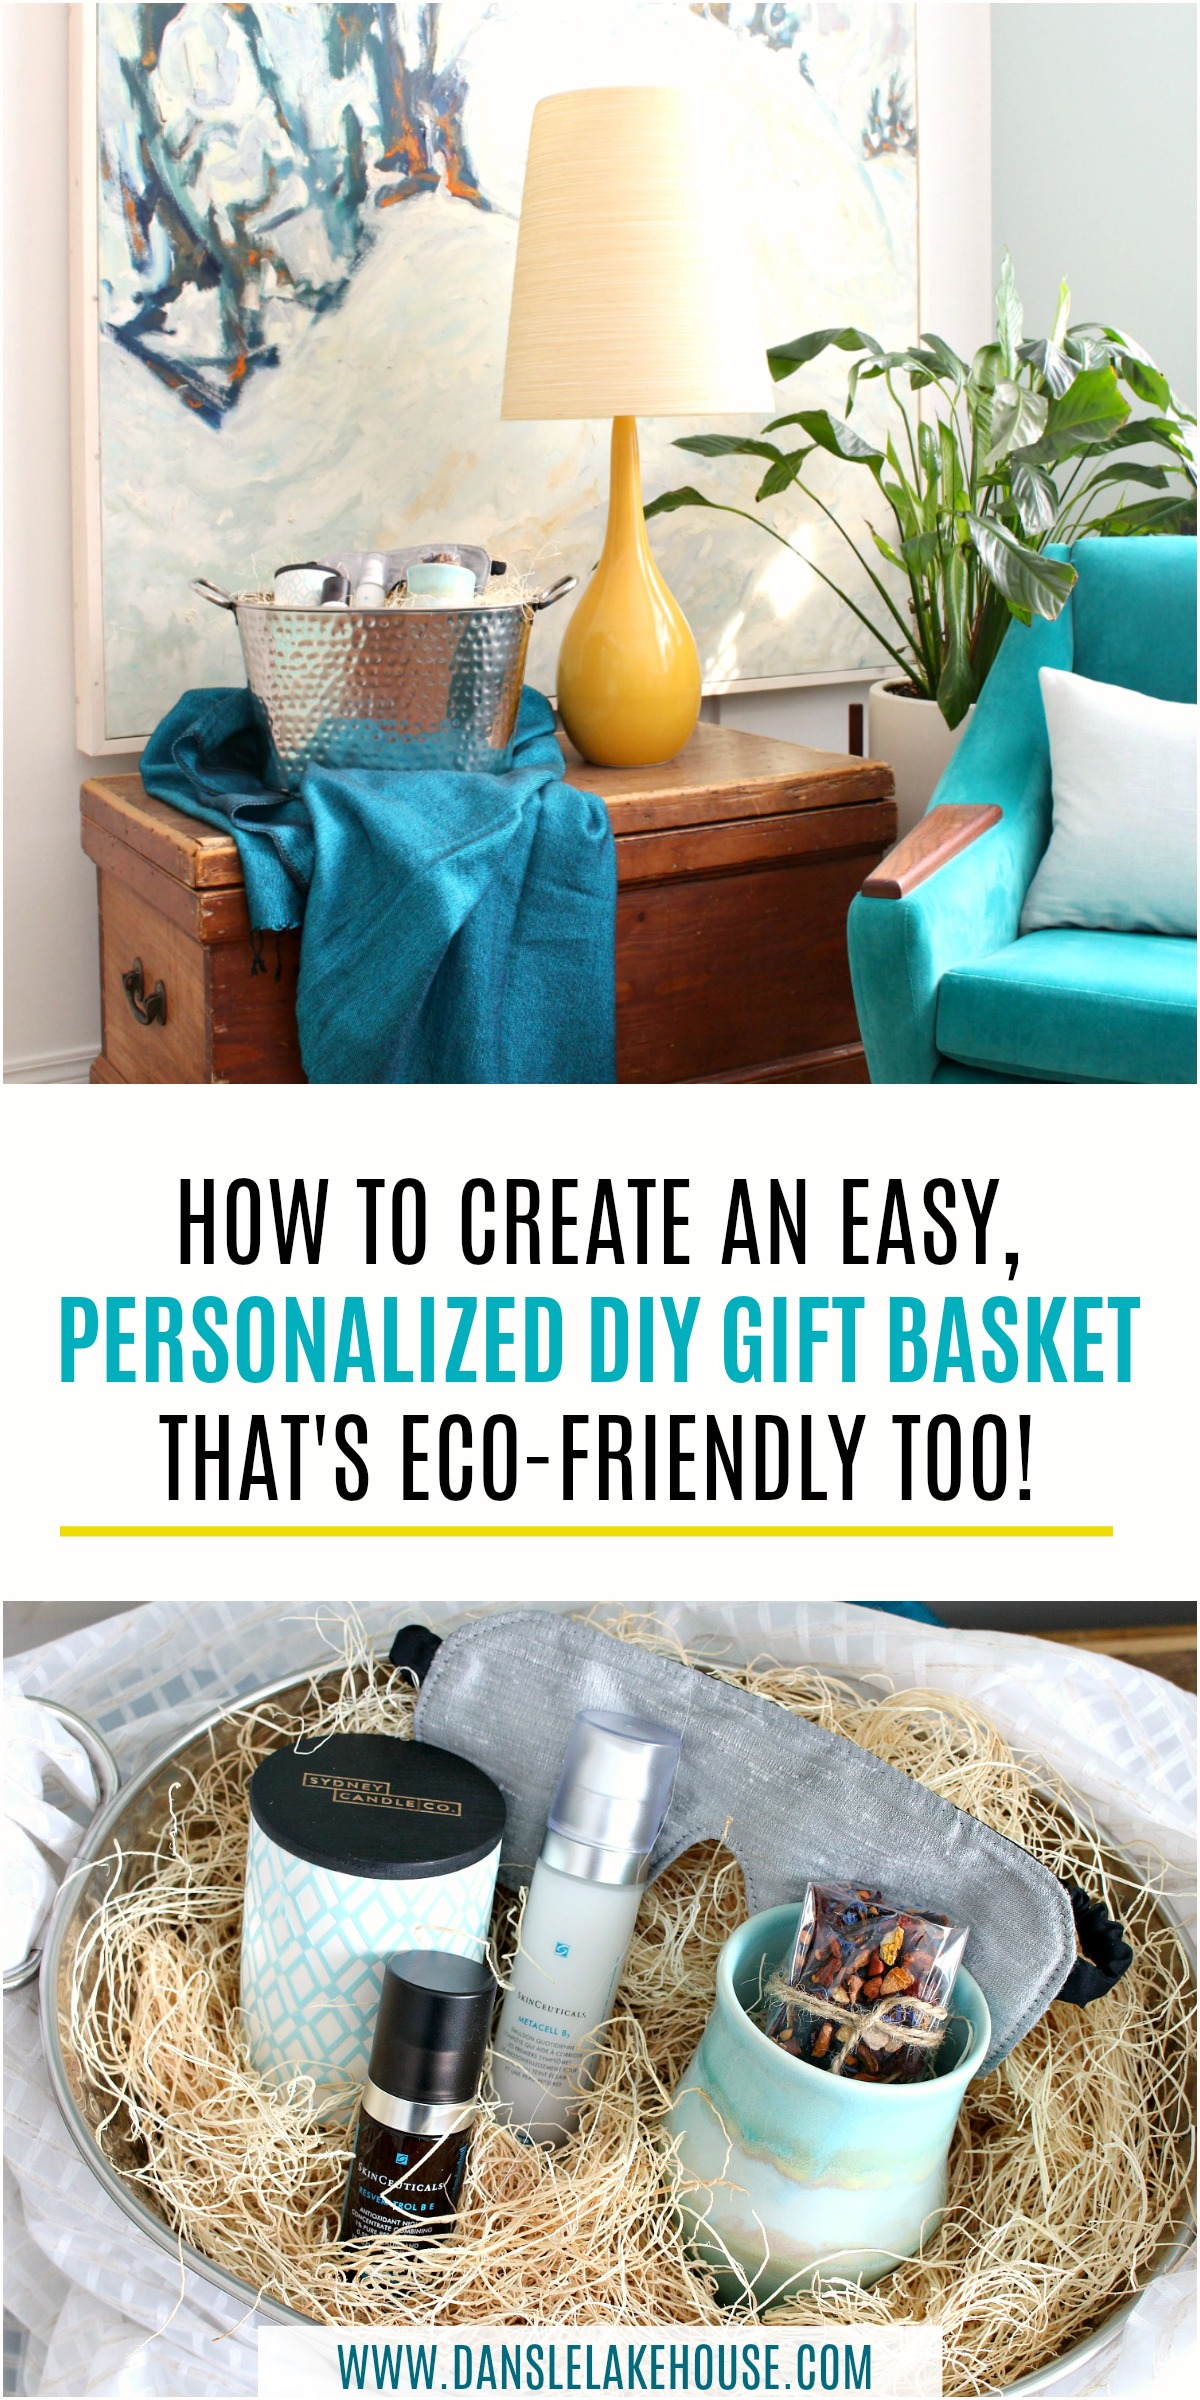 DIy Personalized Gift Basket Idea for Women to Help Beat the Winter Blues! Tips for Making a Gift Basket that's Eco-Friendly with Less Waste! Great Upcycling Idea too! #ad #diy #giftideas #giftbasket